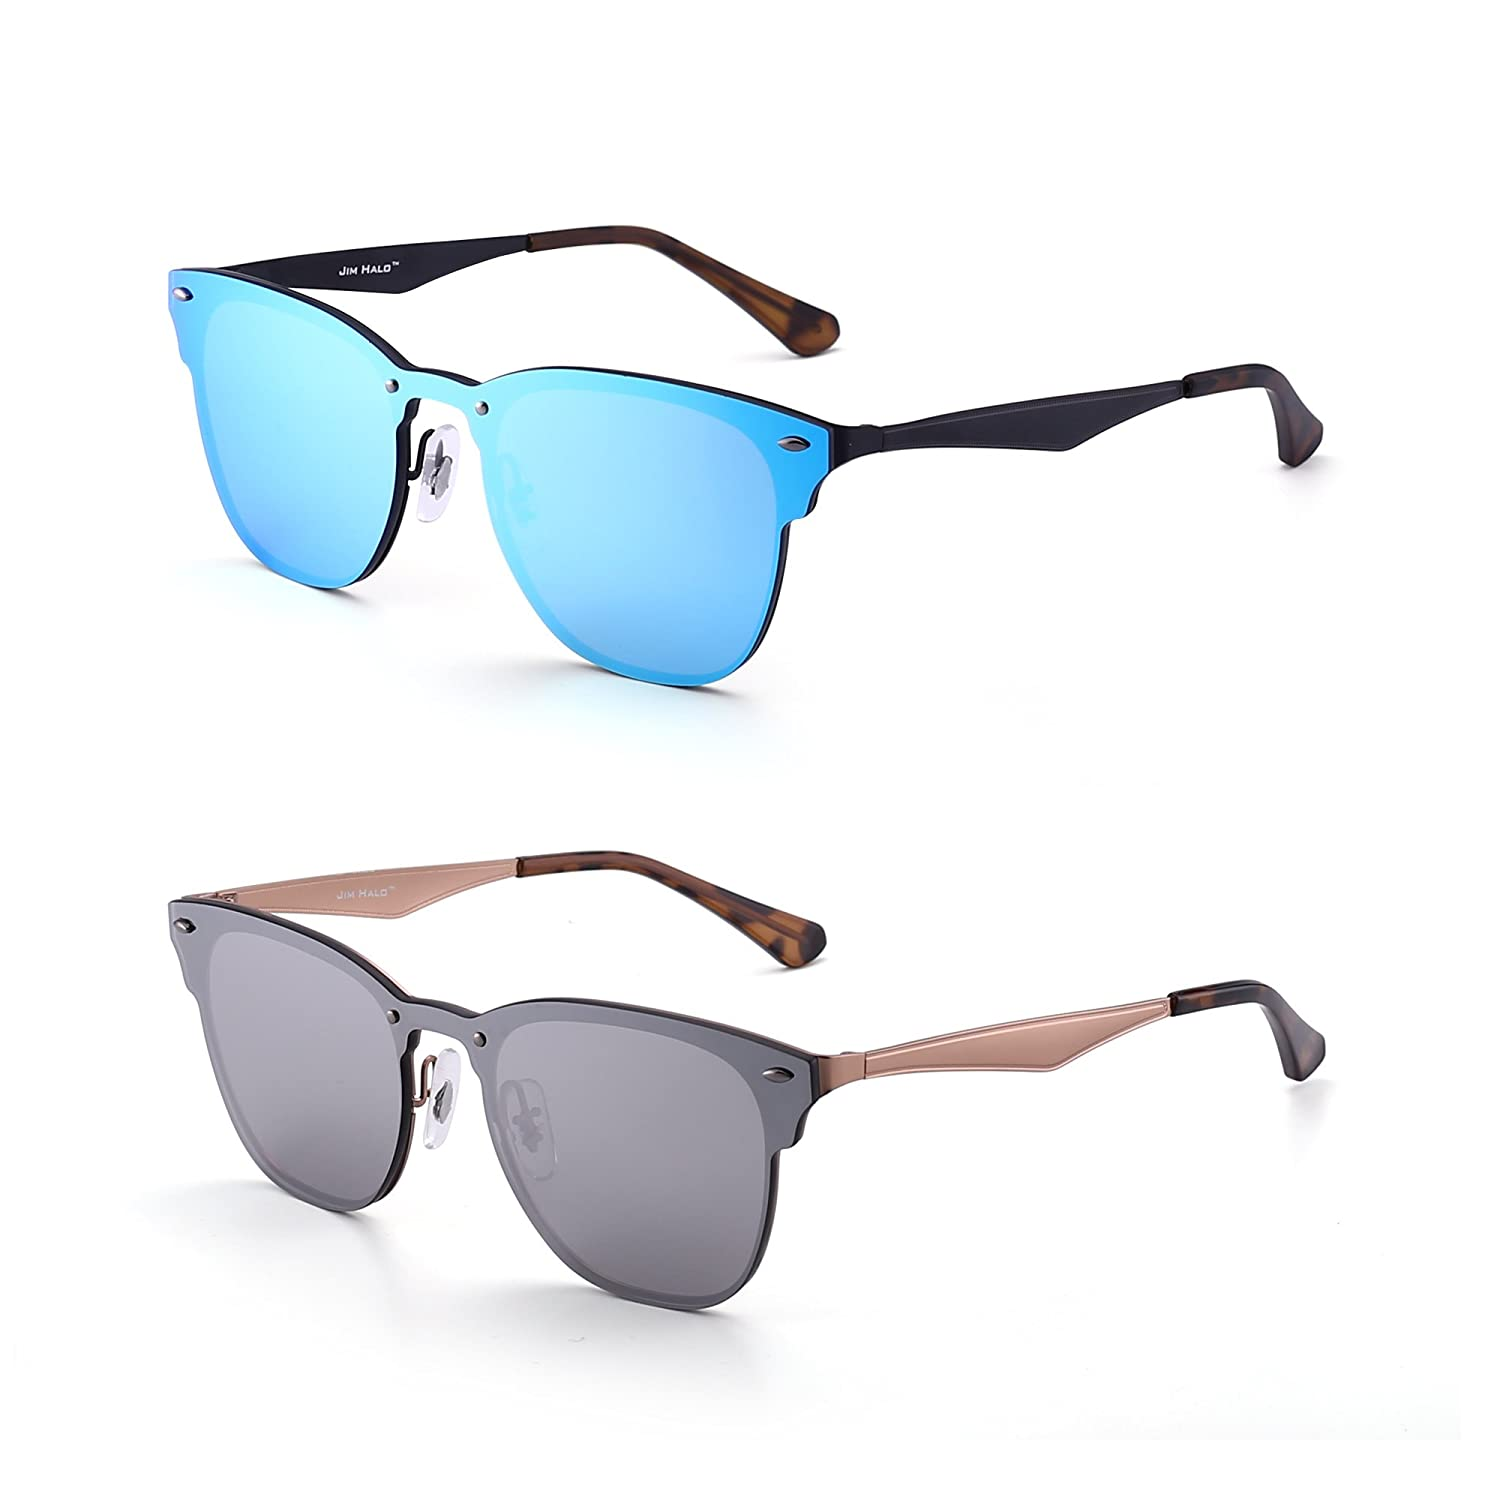 e35841e65c Amazon.com  JIM HALO Rimless Mirrored Sunglasses Women Men One Piece Horned  Rimmed Glasses 2 Pack (Blue   Silver)  Clothing